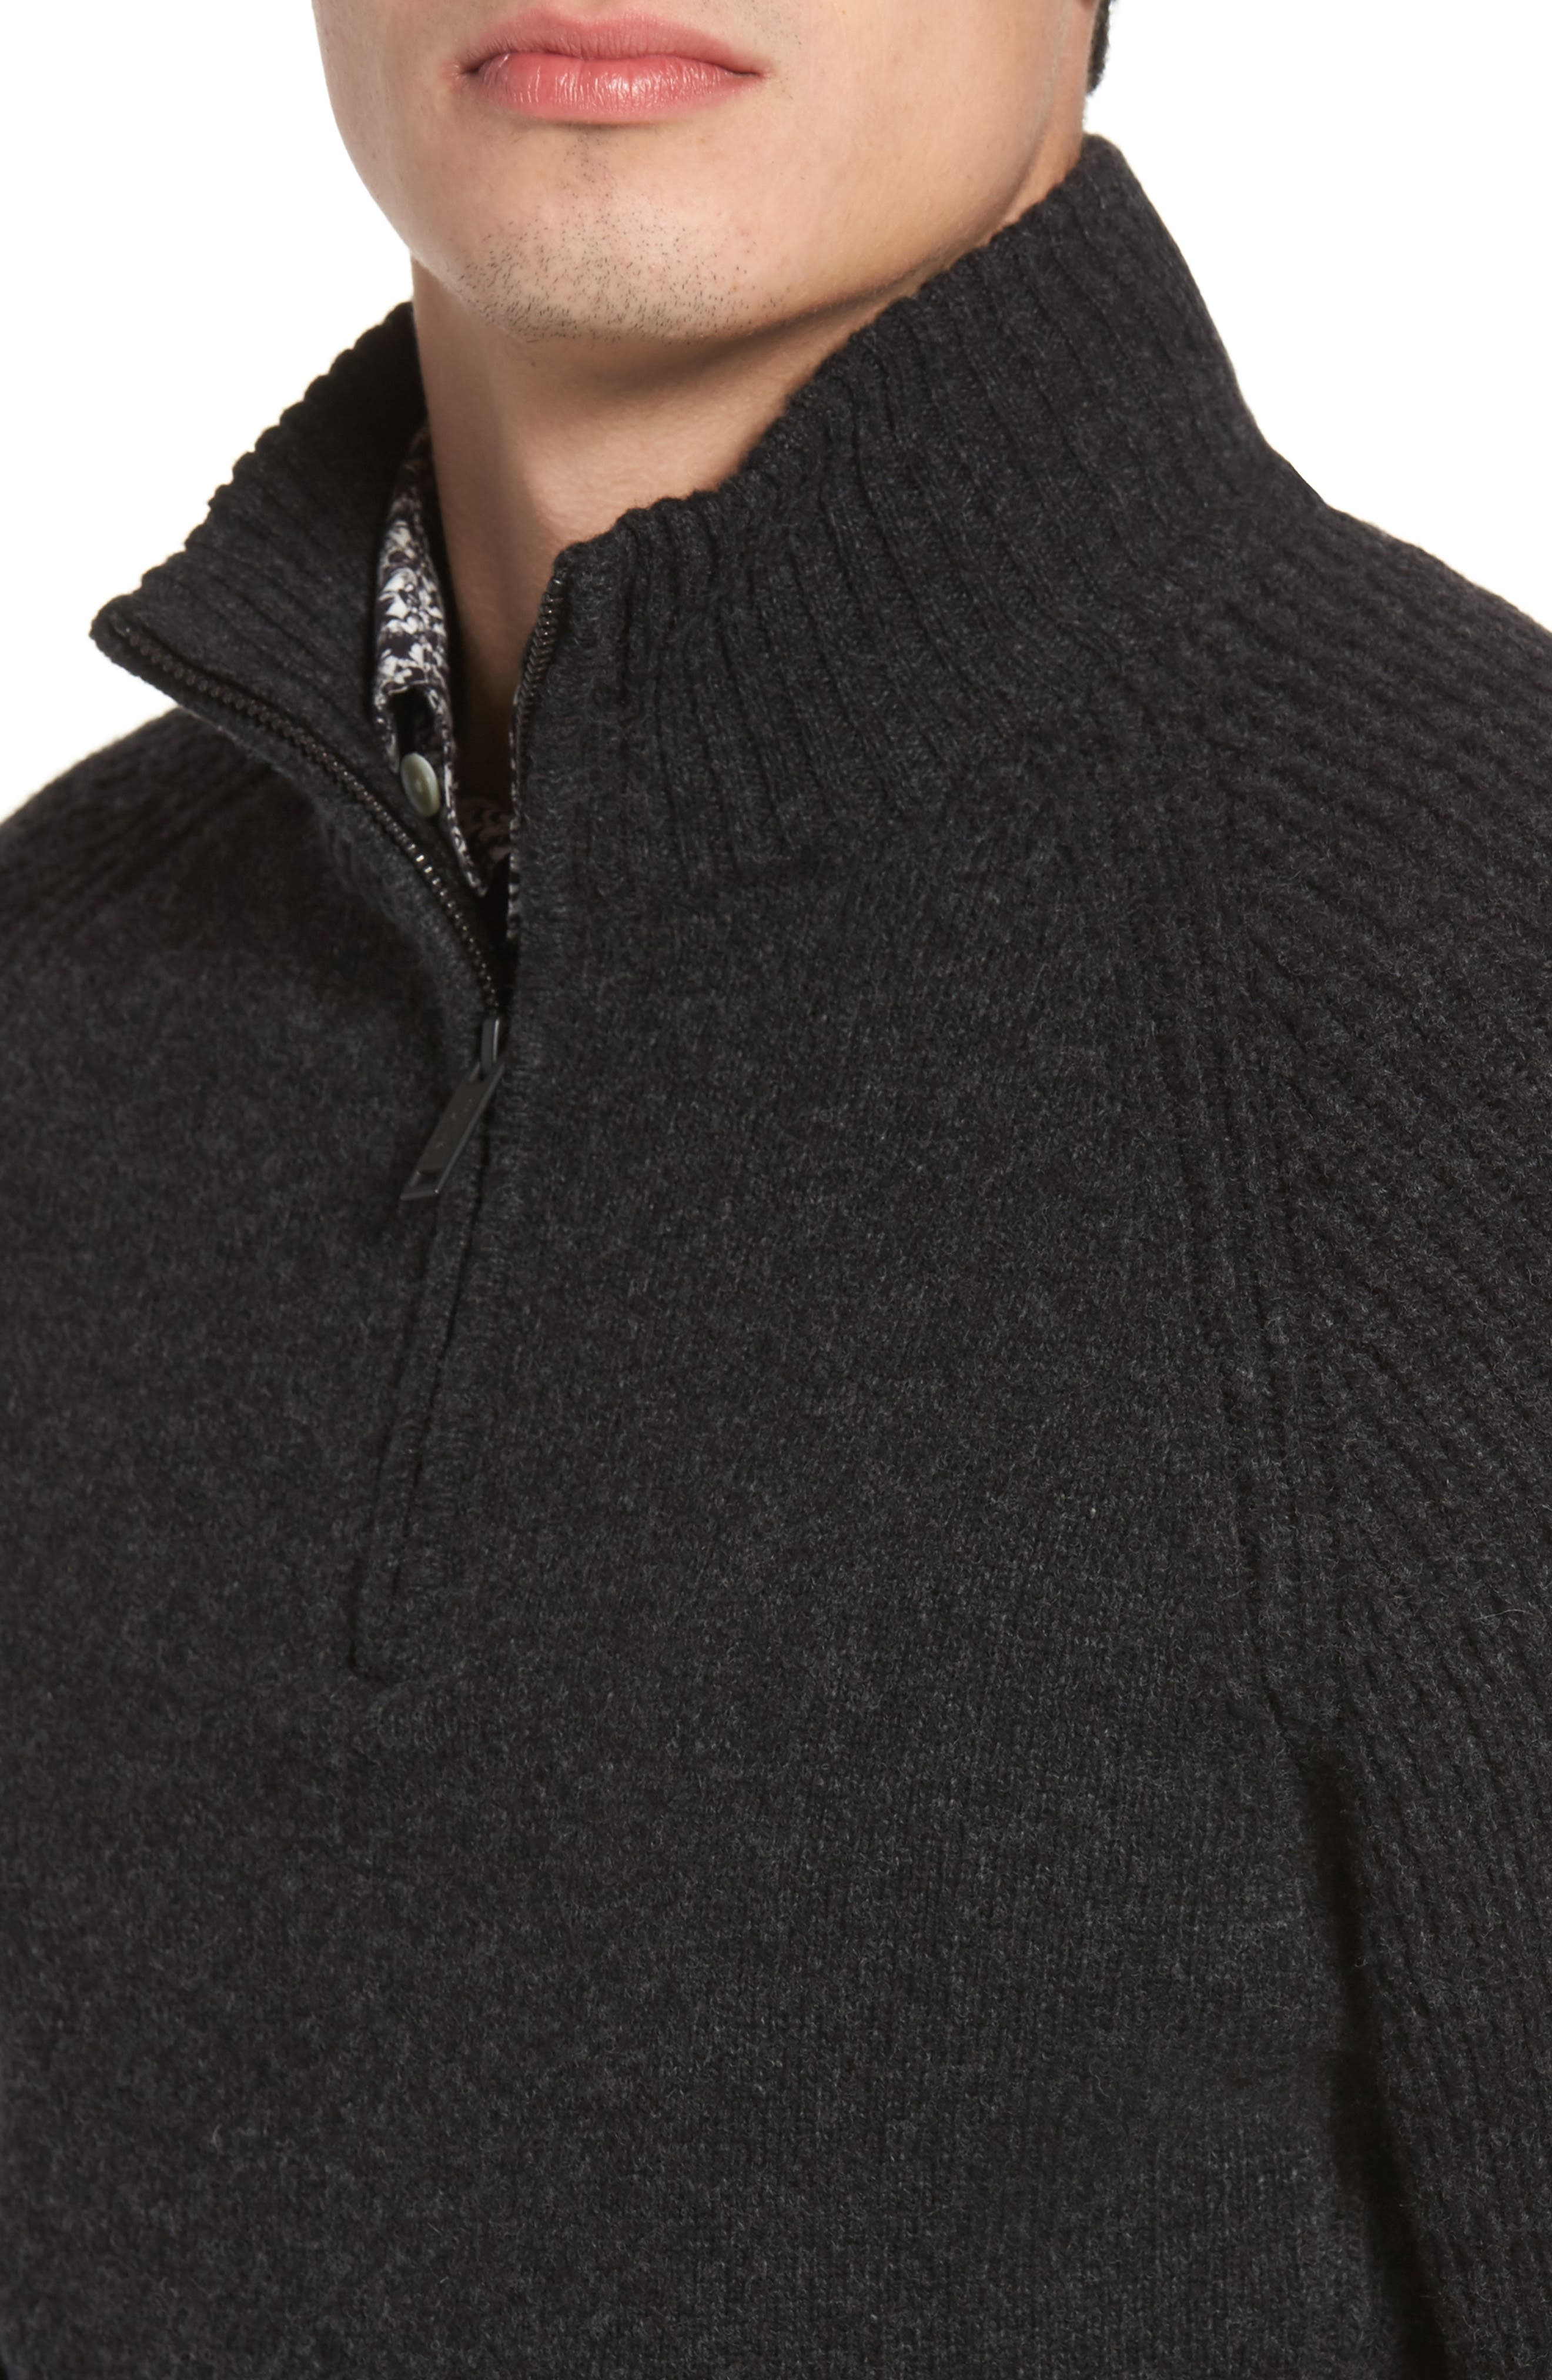 Stredwick Lambswool Sweater,                             Alternate thumbnail 16, color,